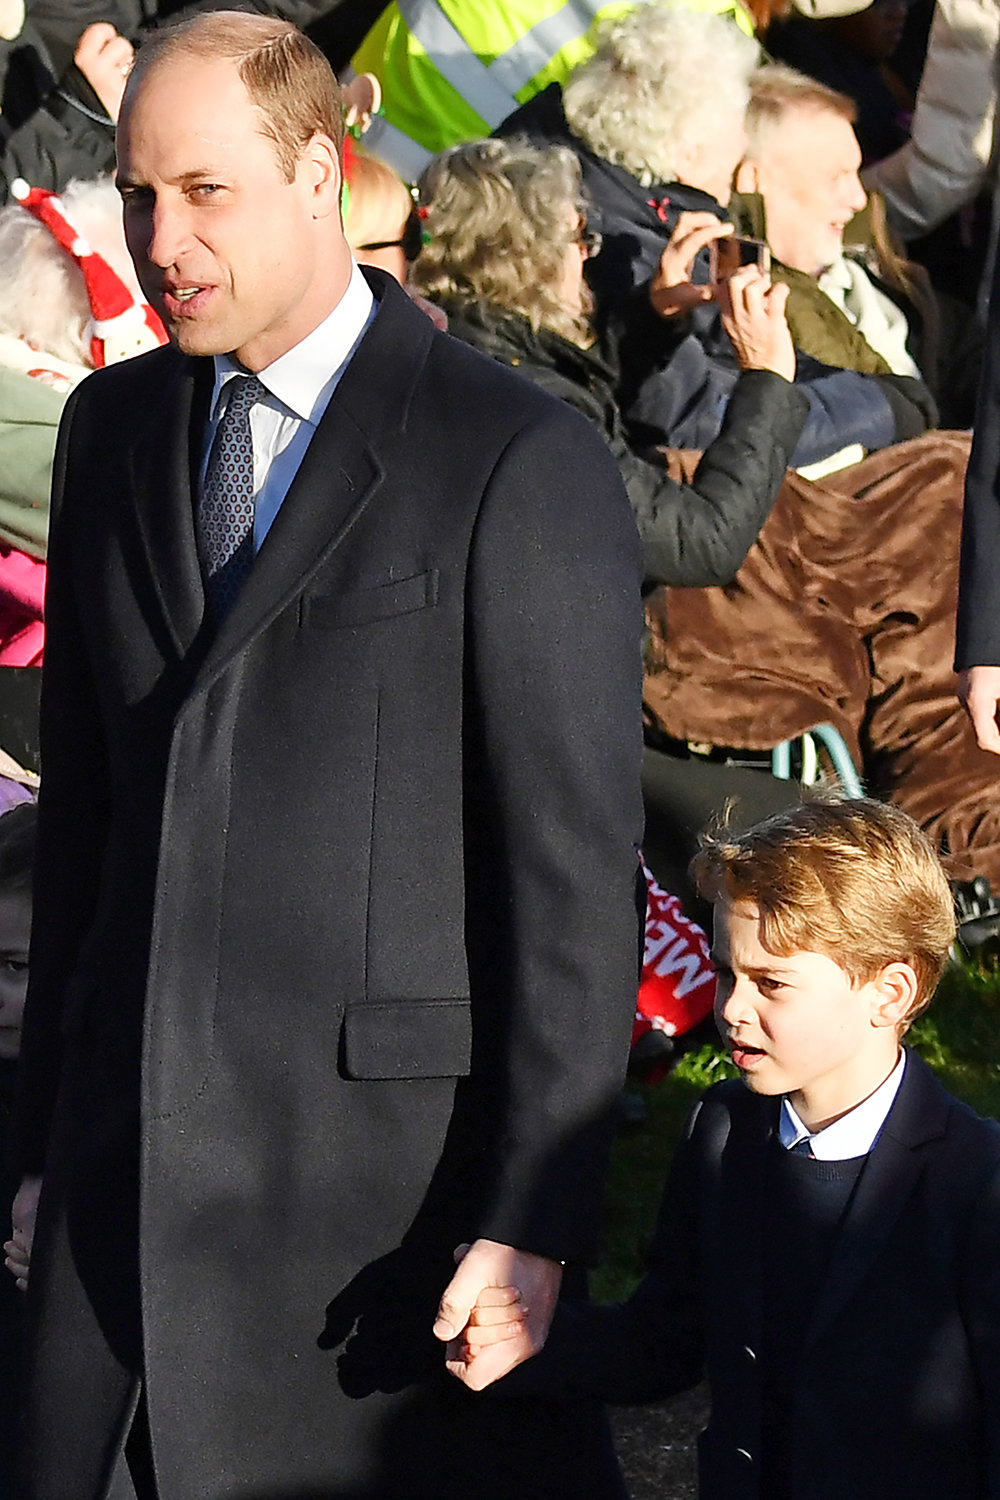 Britain's Prince William, Duke of Cambridge (L) and Britain's Prince George of Cambridge arrive for the Royal Family's traditional Christmas Day service at St Mary Magdalene Church in Sandringham, Norfolk, eastern England, on December 25, 2019. (Photo by Ben STANSALL / AFP) (Photo by BEN STANSALL/AFP via Getty Images)